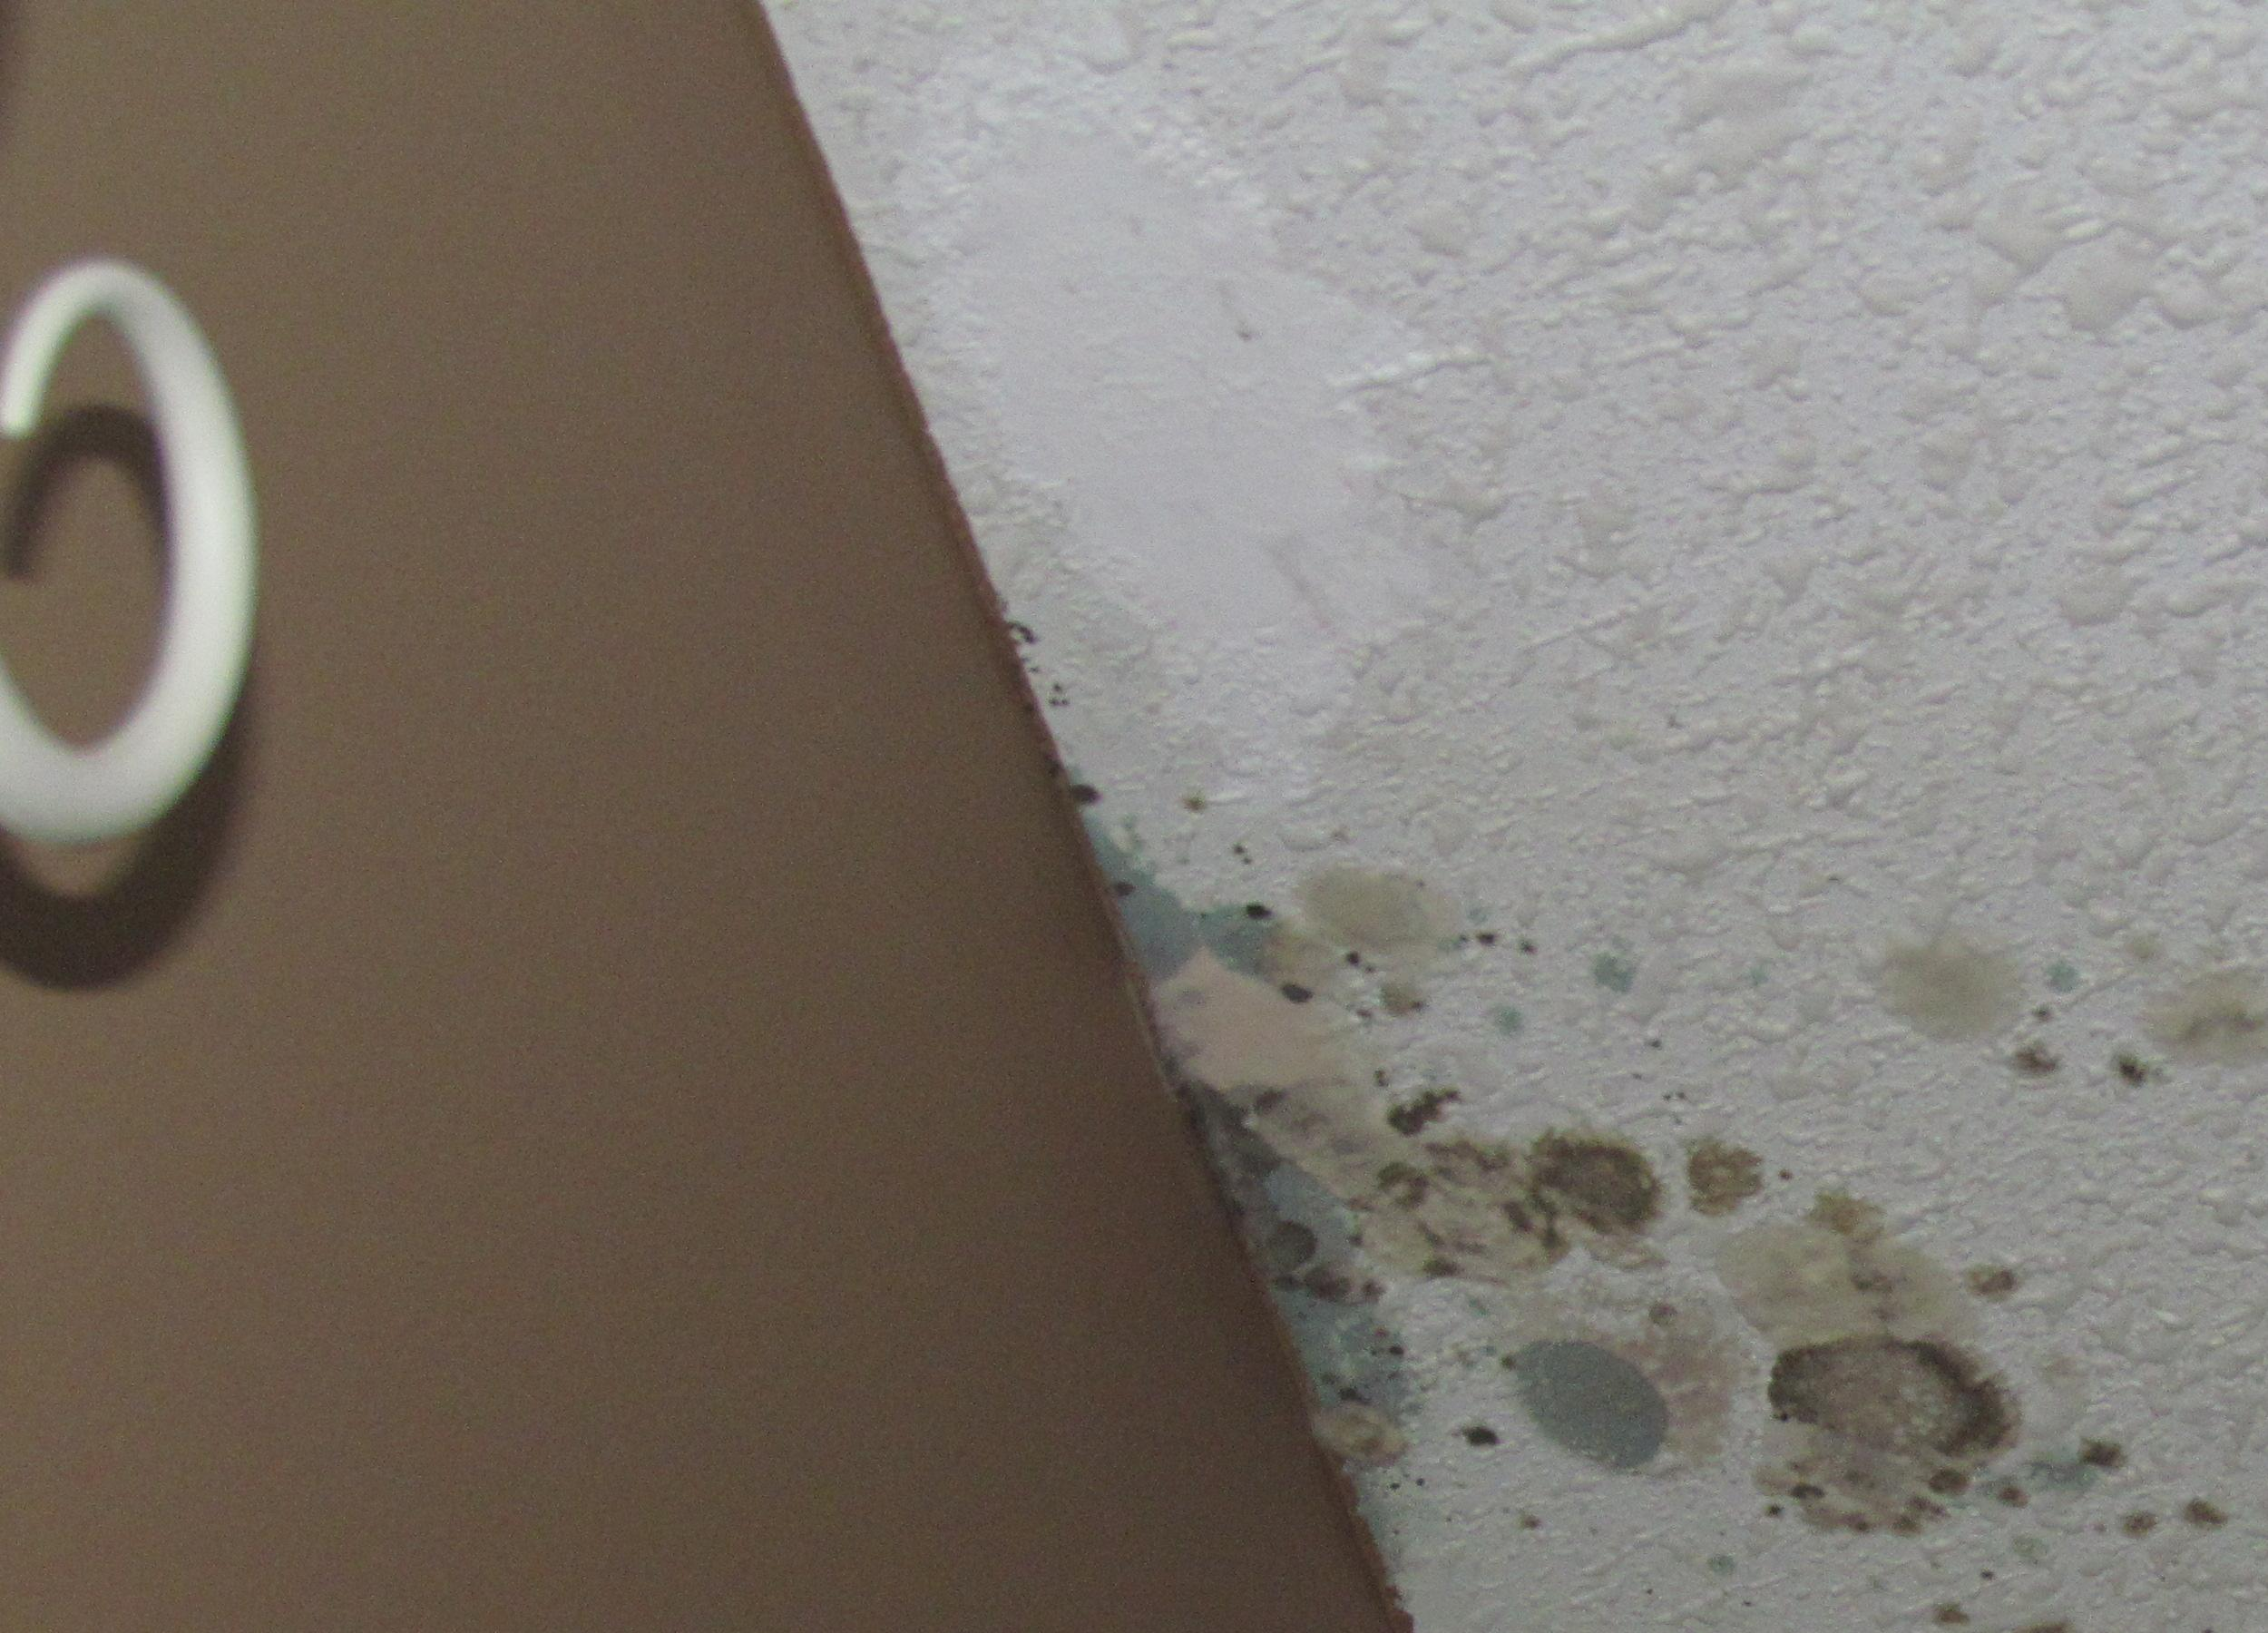 Mold caused by frost in the attic